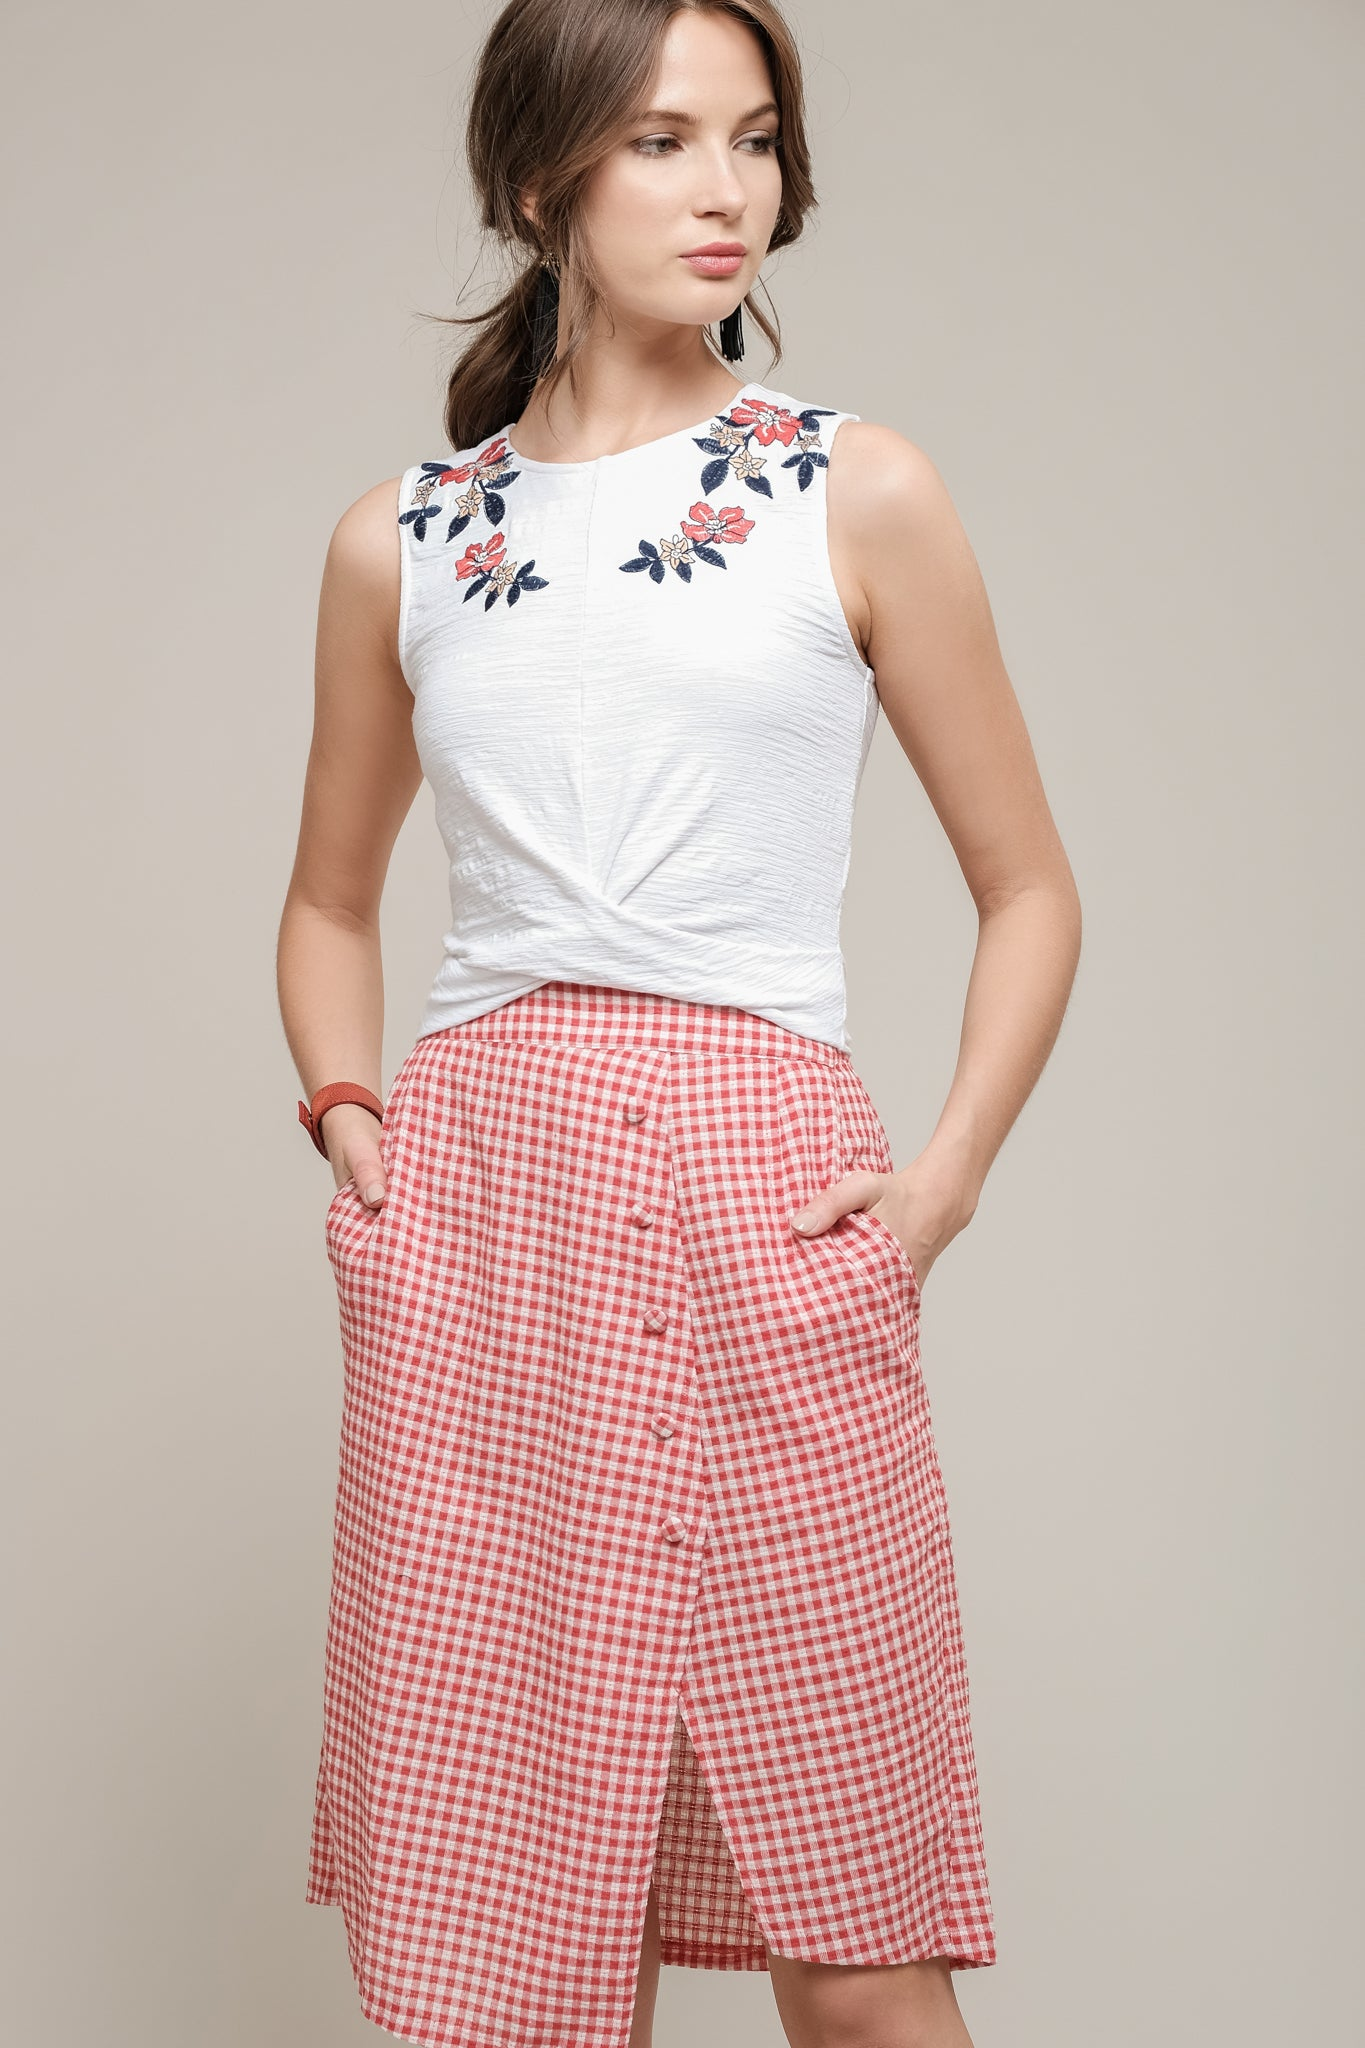 EMBROIDERED SLEEVELESS TOP WITH TWIST FRONT